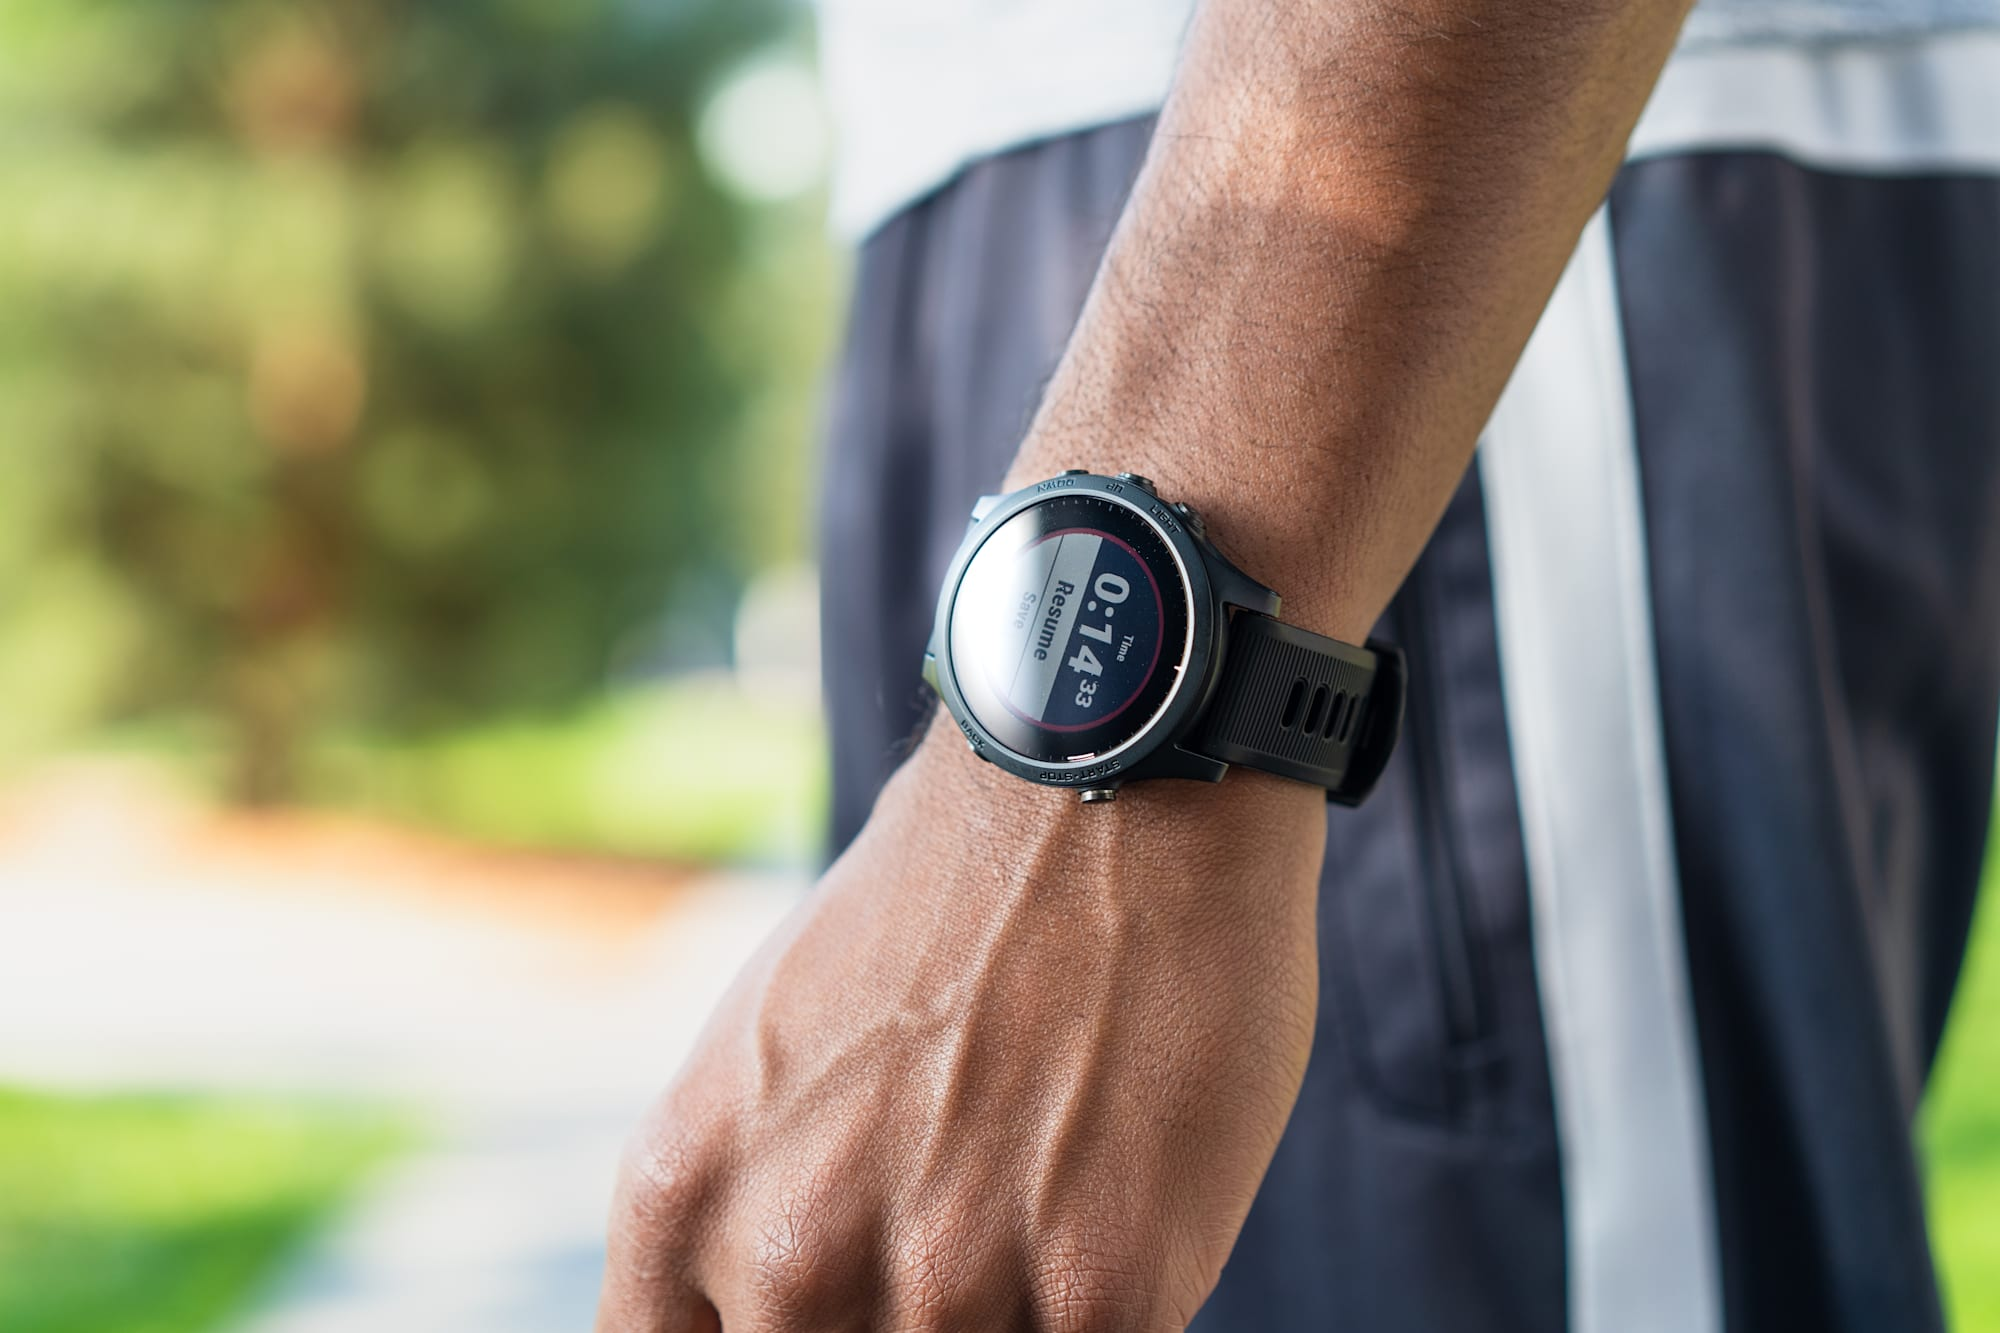 The best fitness wearables